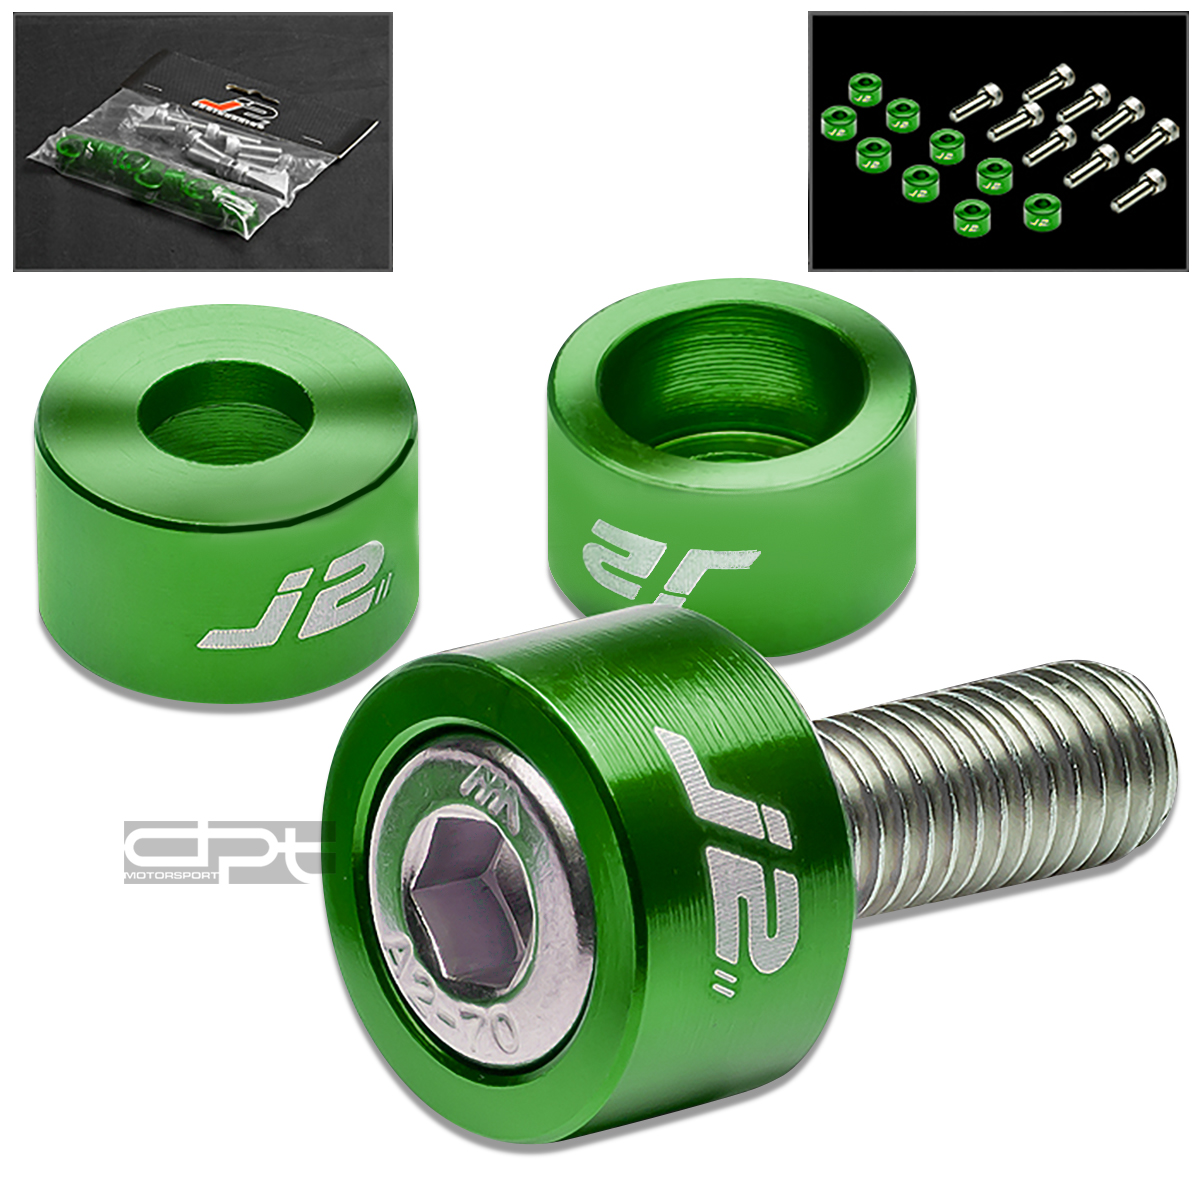 J2 JDM EXHAUST HEADER MANIFOLD METRIC CUP WASHER+BOLT/NUT KIT DC2/AP1/AP2 GREEN